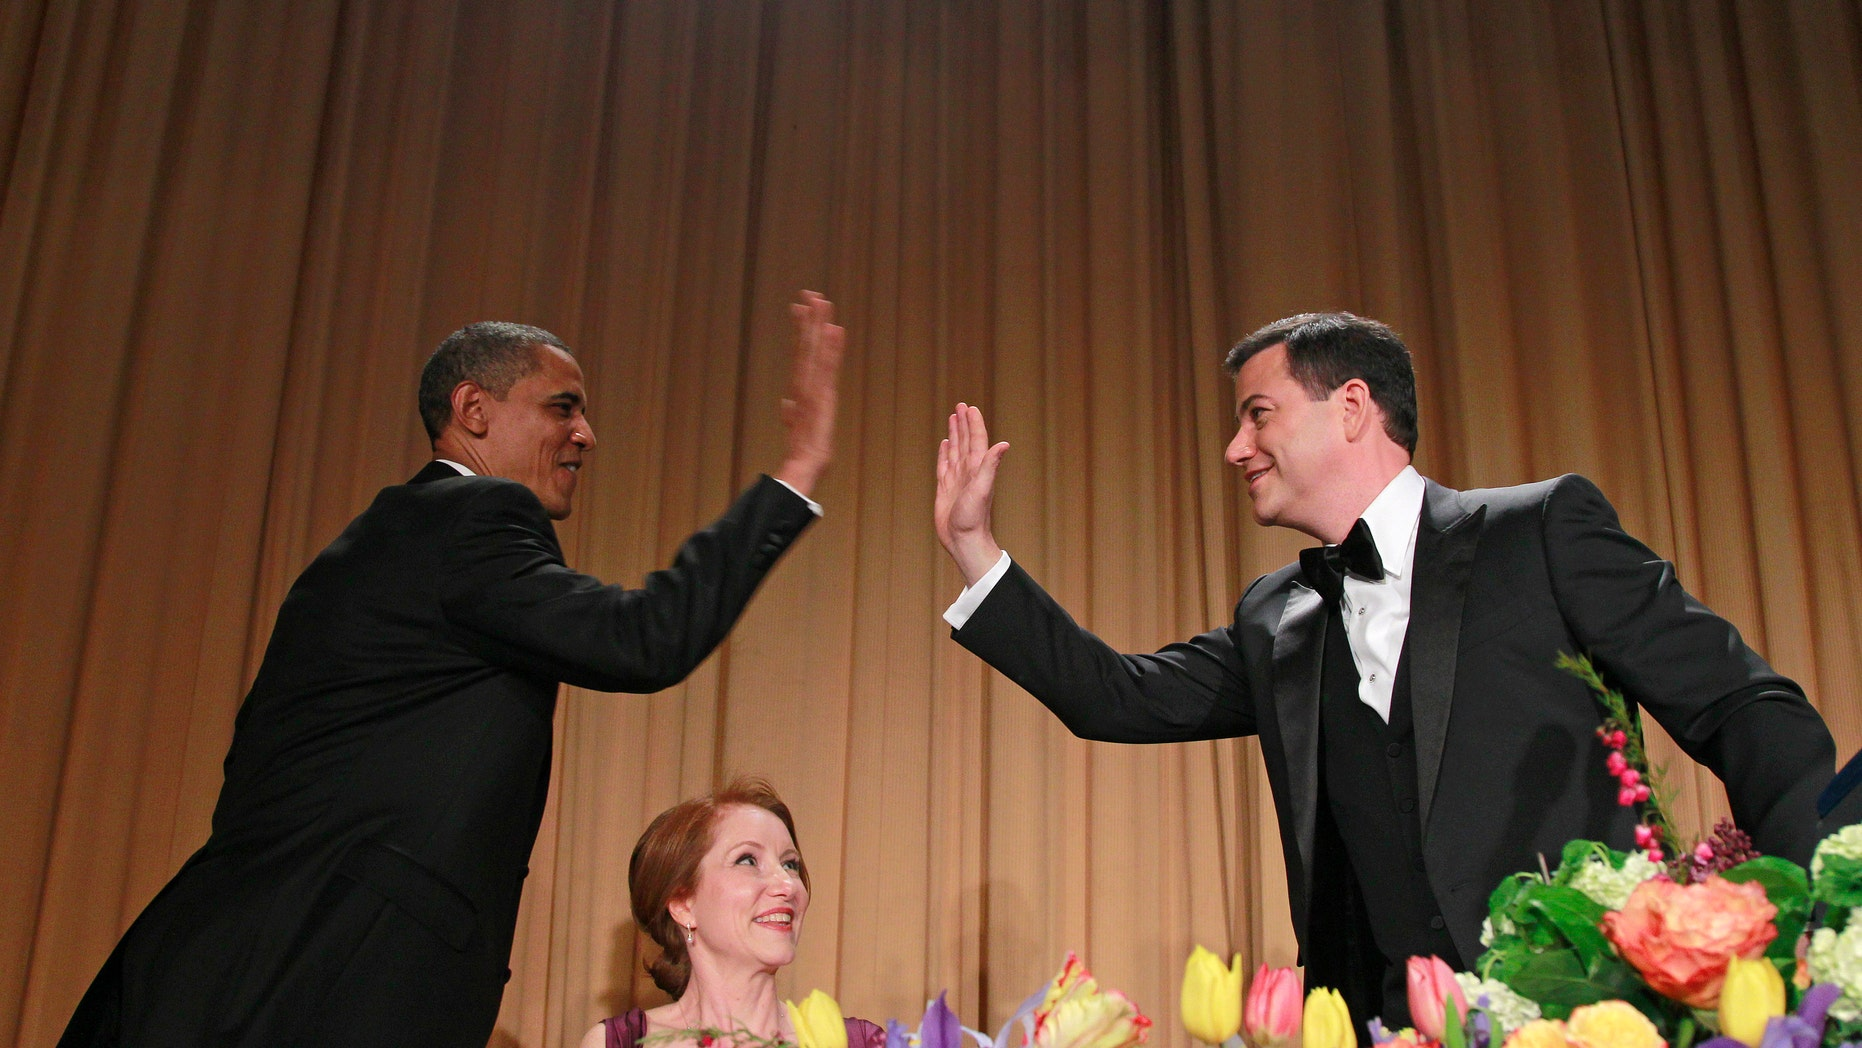 President Barack Obama high-fives late-night comic Jimmy Kimmel as Caren Bohan, a Reuters journalist and president of the White House Correspondents' Association looks on during the White House Correspondents' Association Dinner, Saturday, April 28, 2012 in Washington. (AP Photo/Haraz N. Ghanbari)